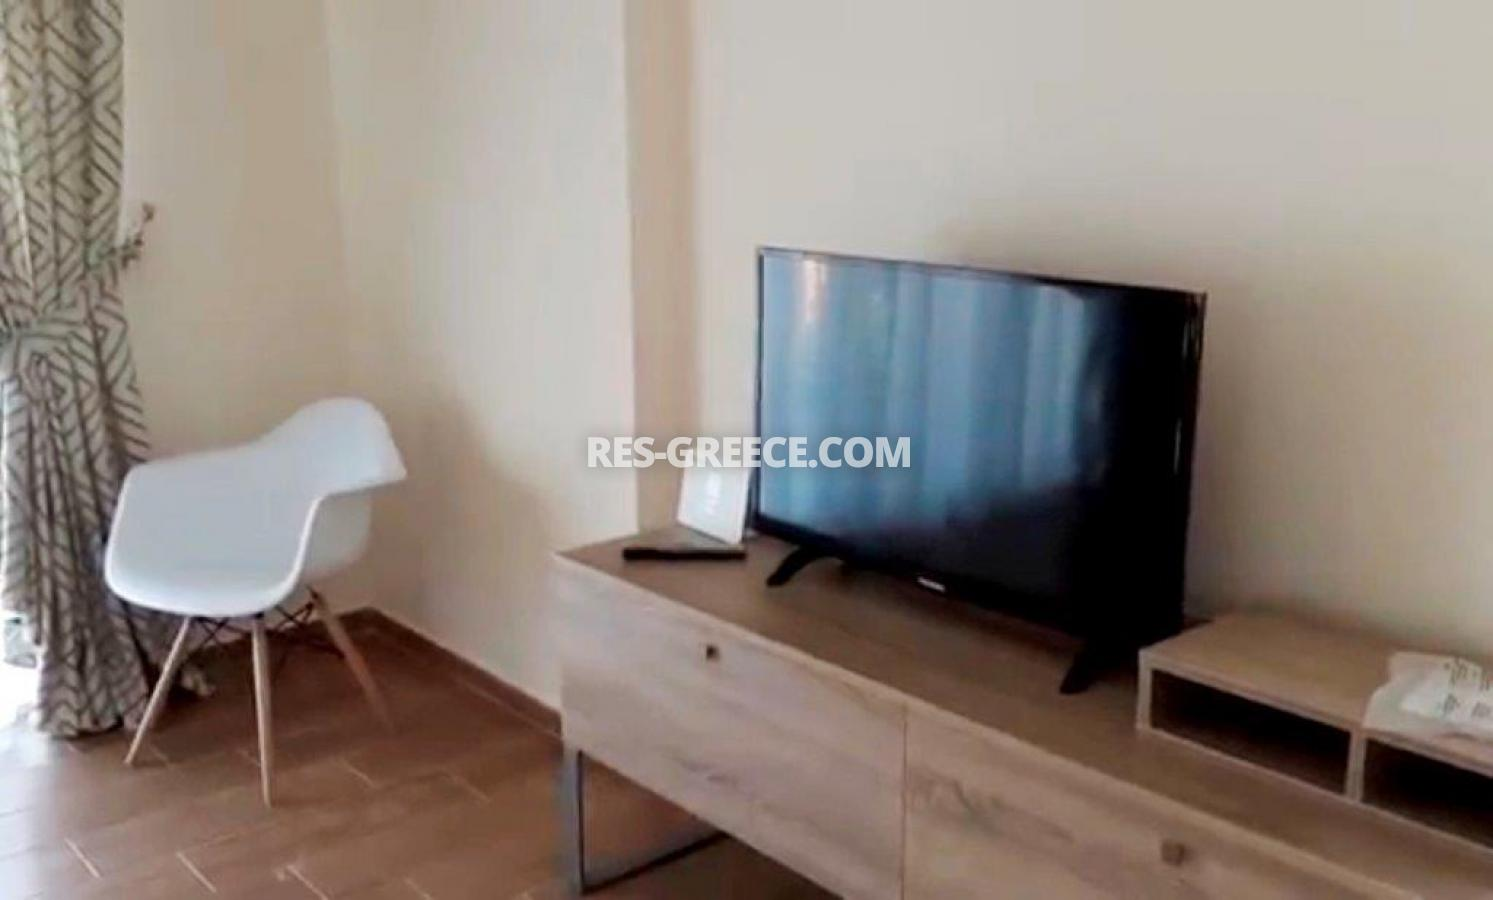 Palia Agora, Northern Aegean Islands, Greece - new house for sale in the heart of Thassos town - Photo 6